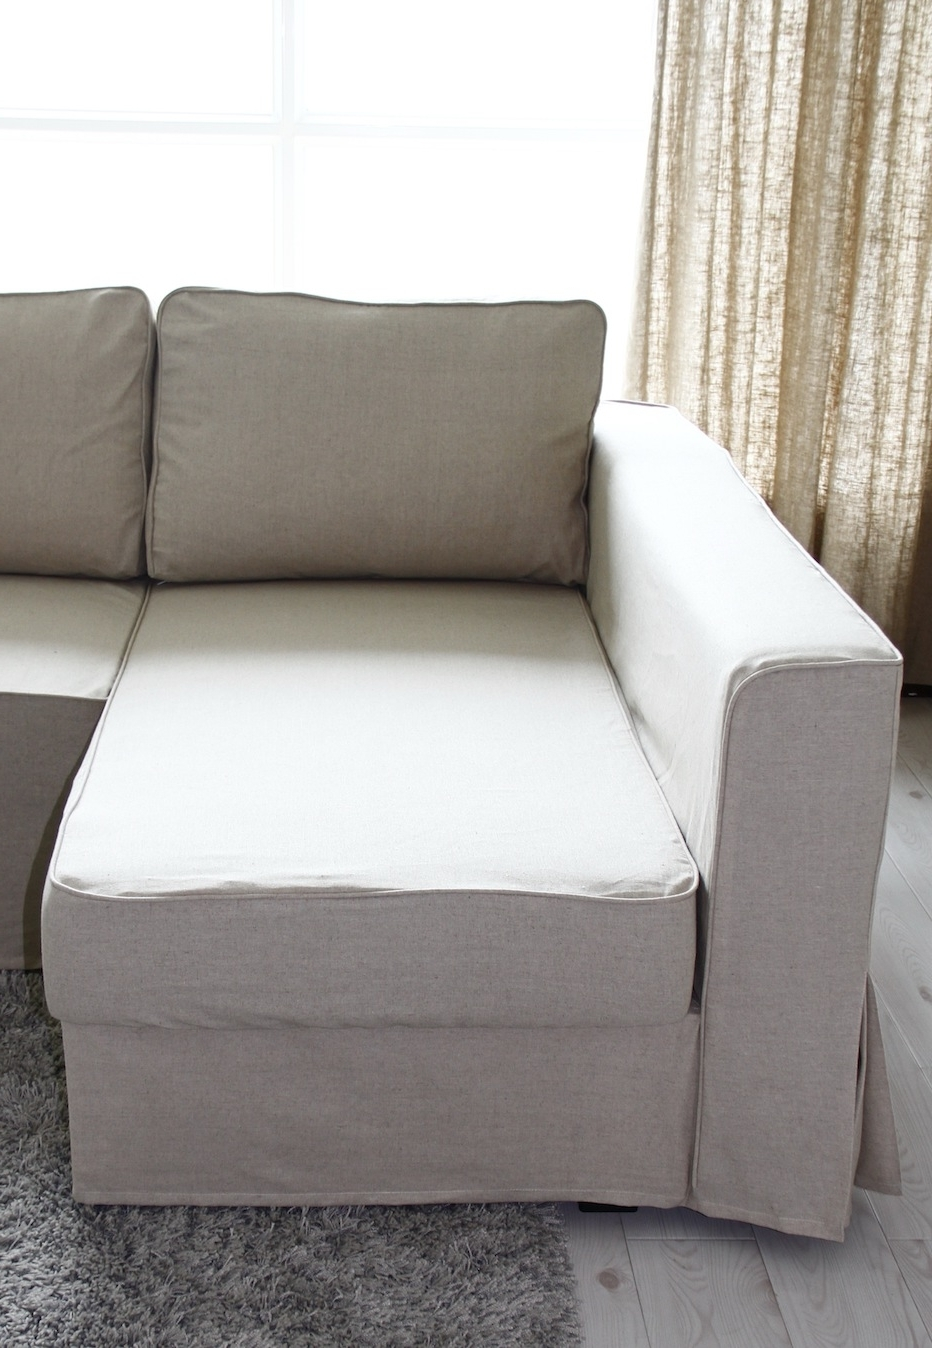 Chaise Lounge Sofa Covers Regarding Widely Used Fit Linen Manstad Sofa Slipcovers Now Available (View 13 of 15)